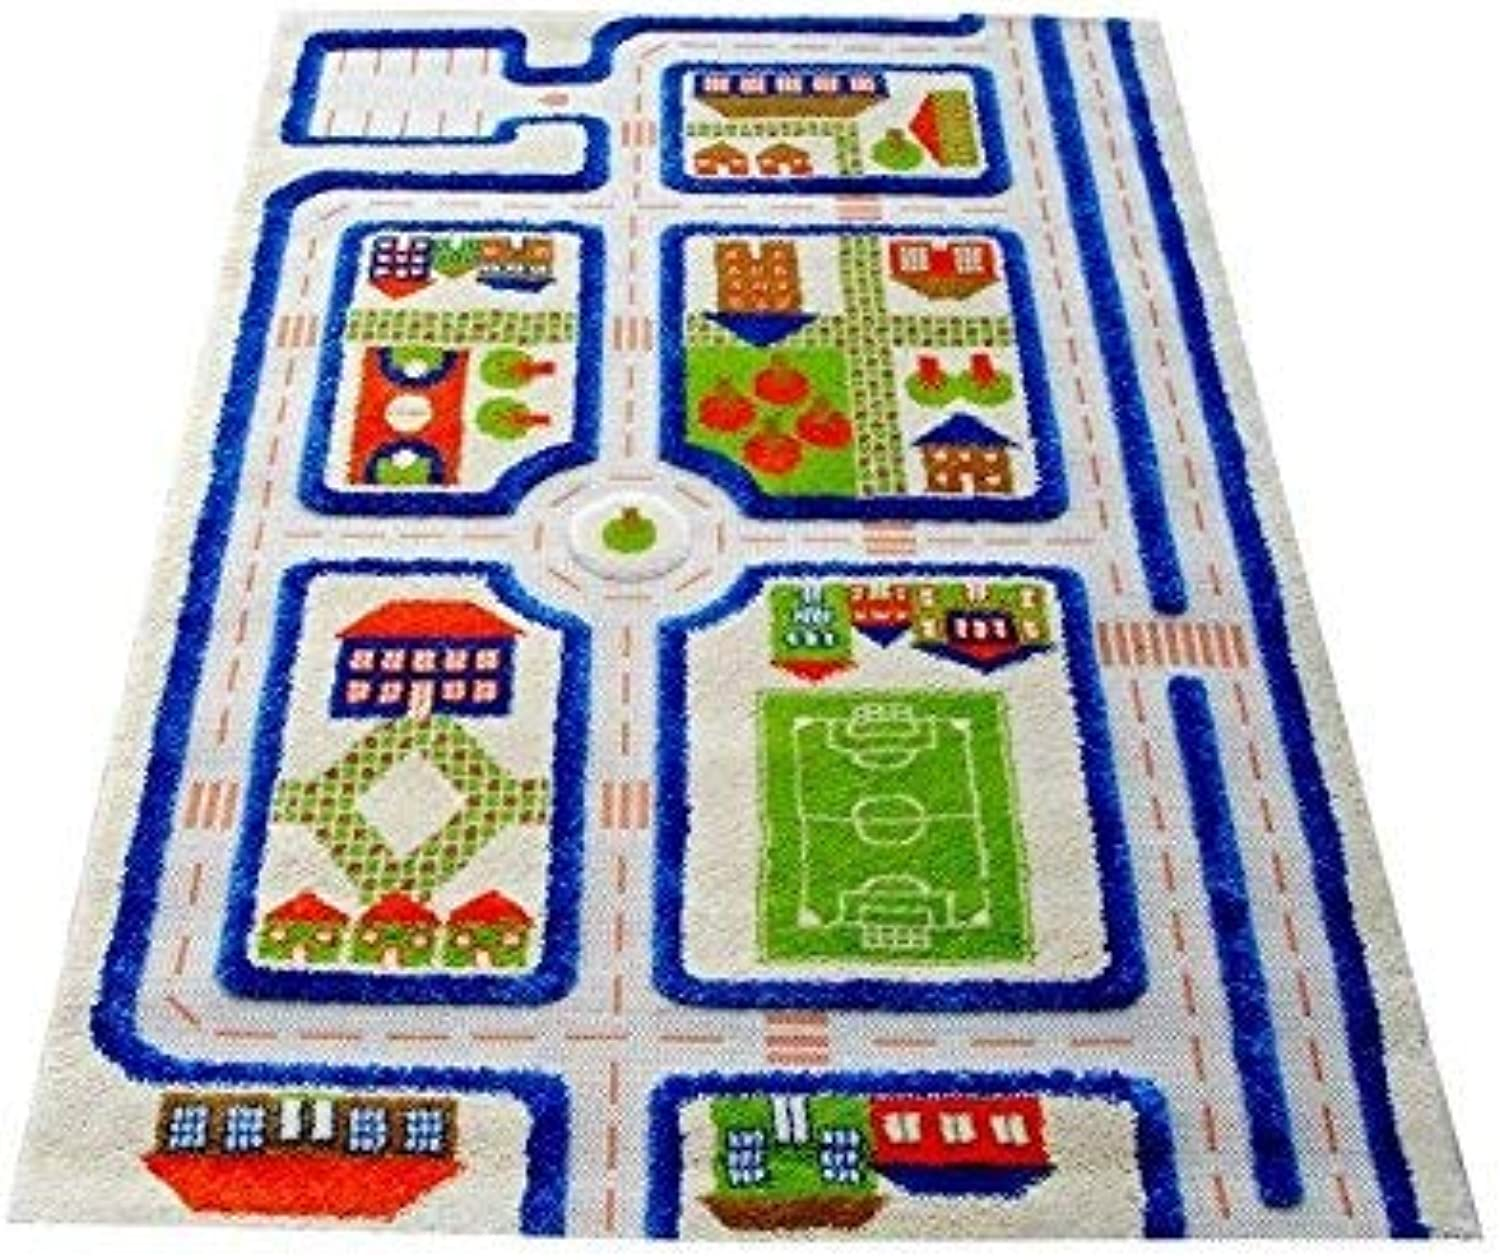 Traffic bluee by IVI 3D Play Rugs, 39x59 Inches